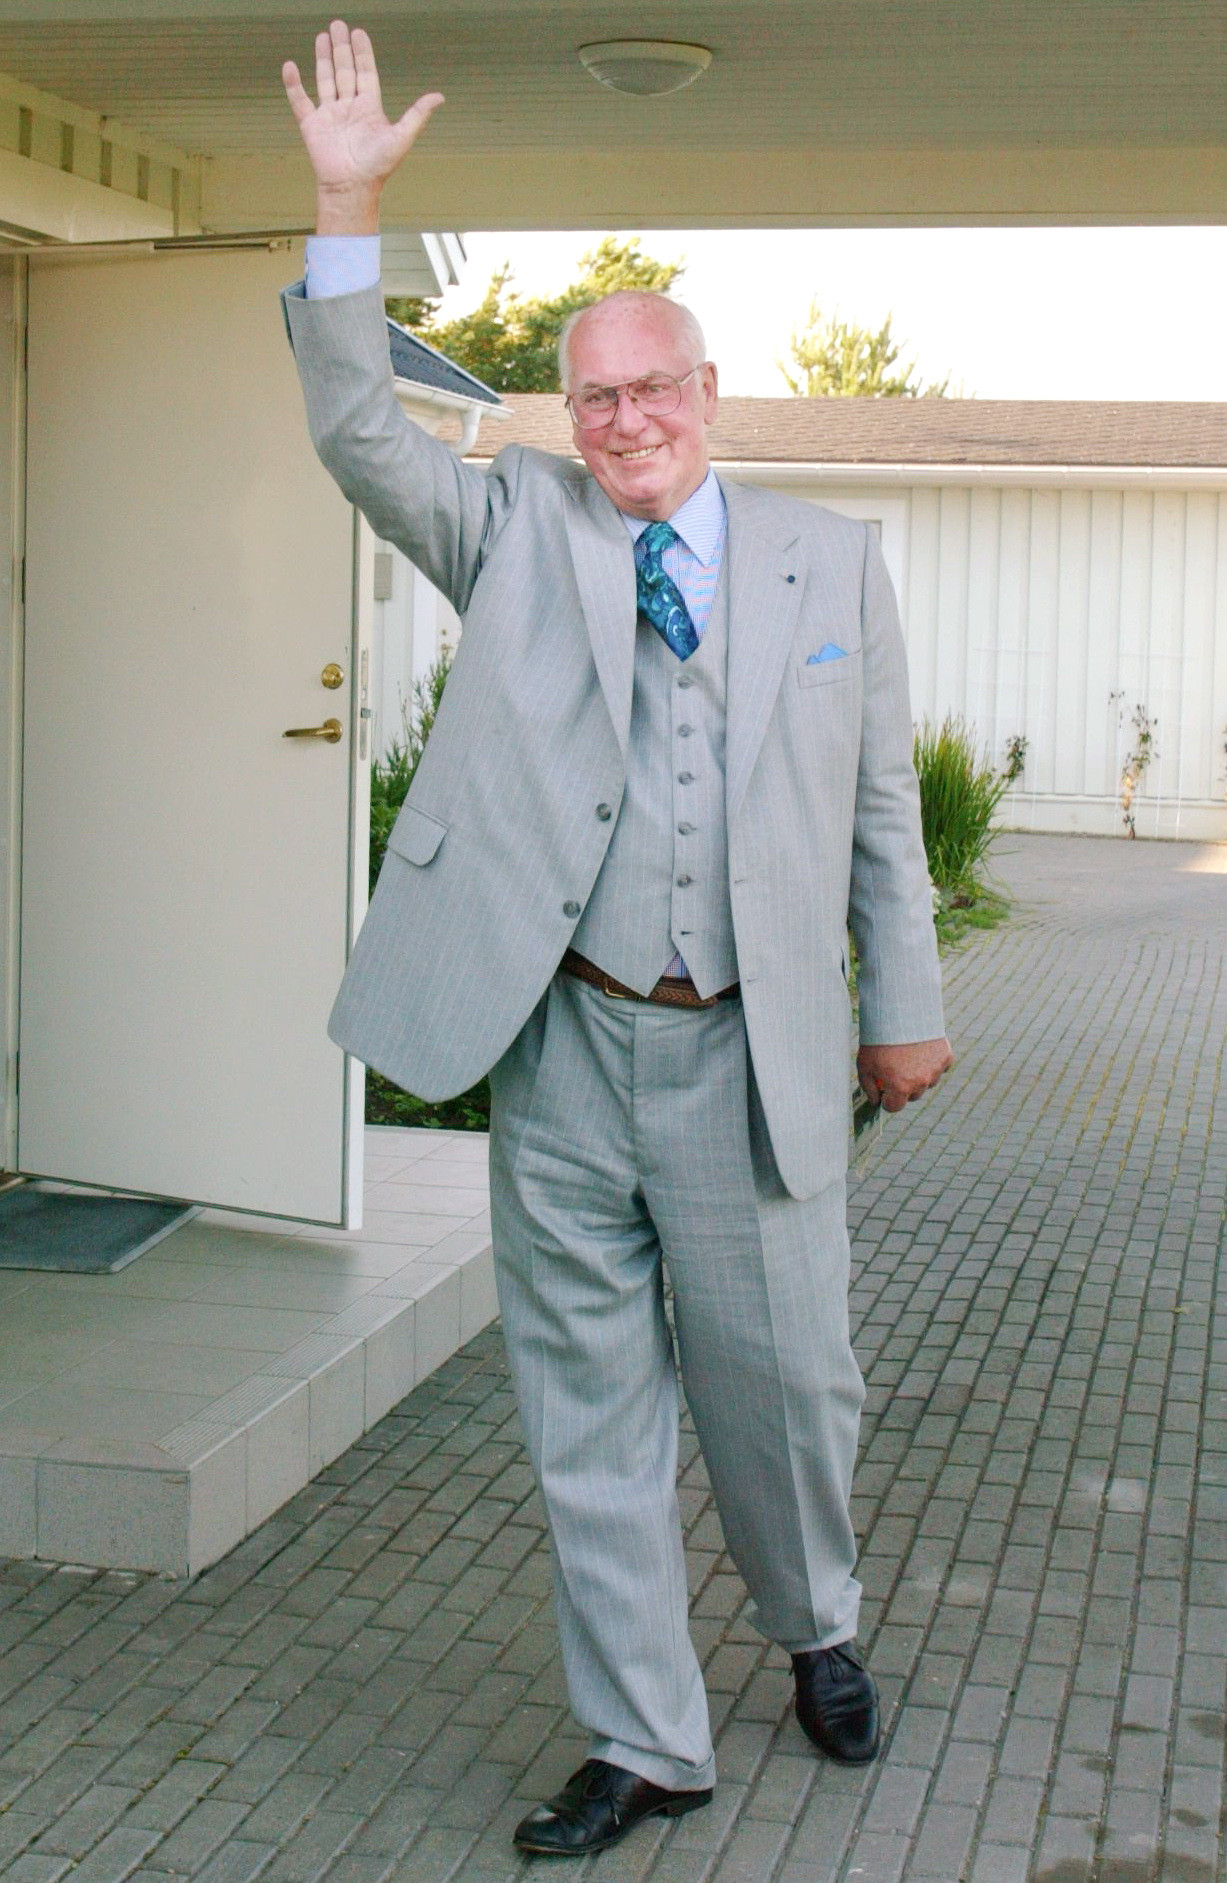 Lennart Meri on 13 September 2003. Photo by Peeter Langovits, the archive of the foreign ministry.